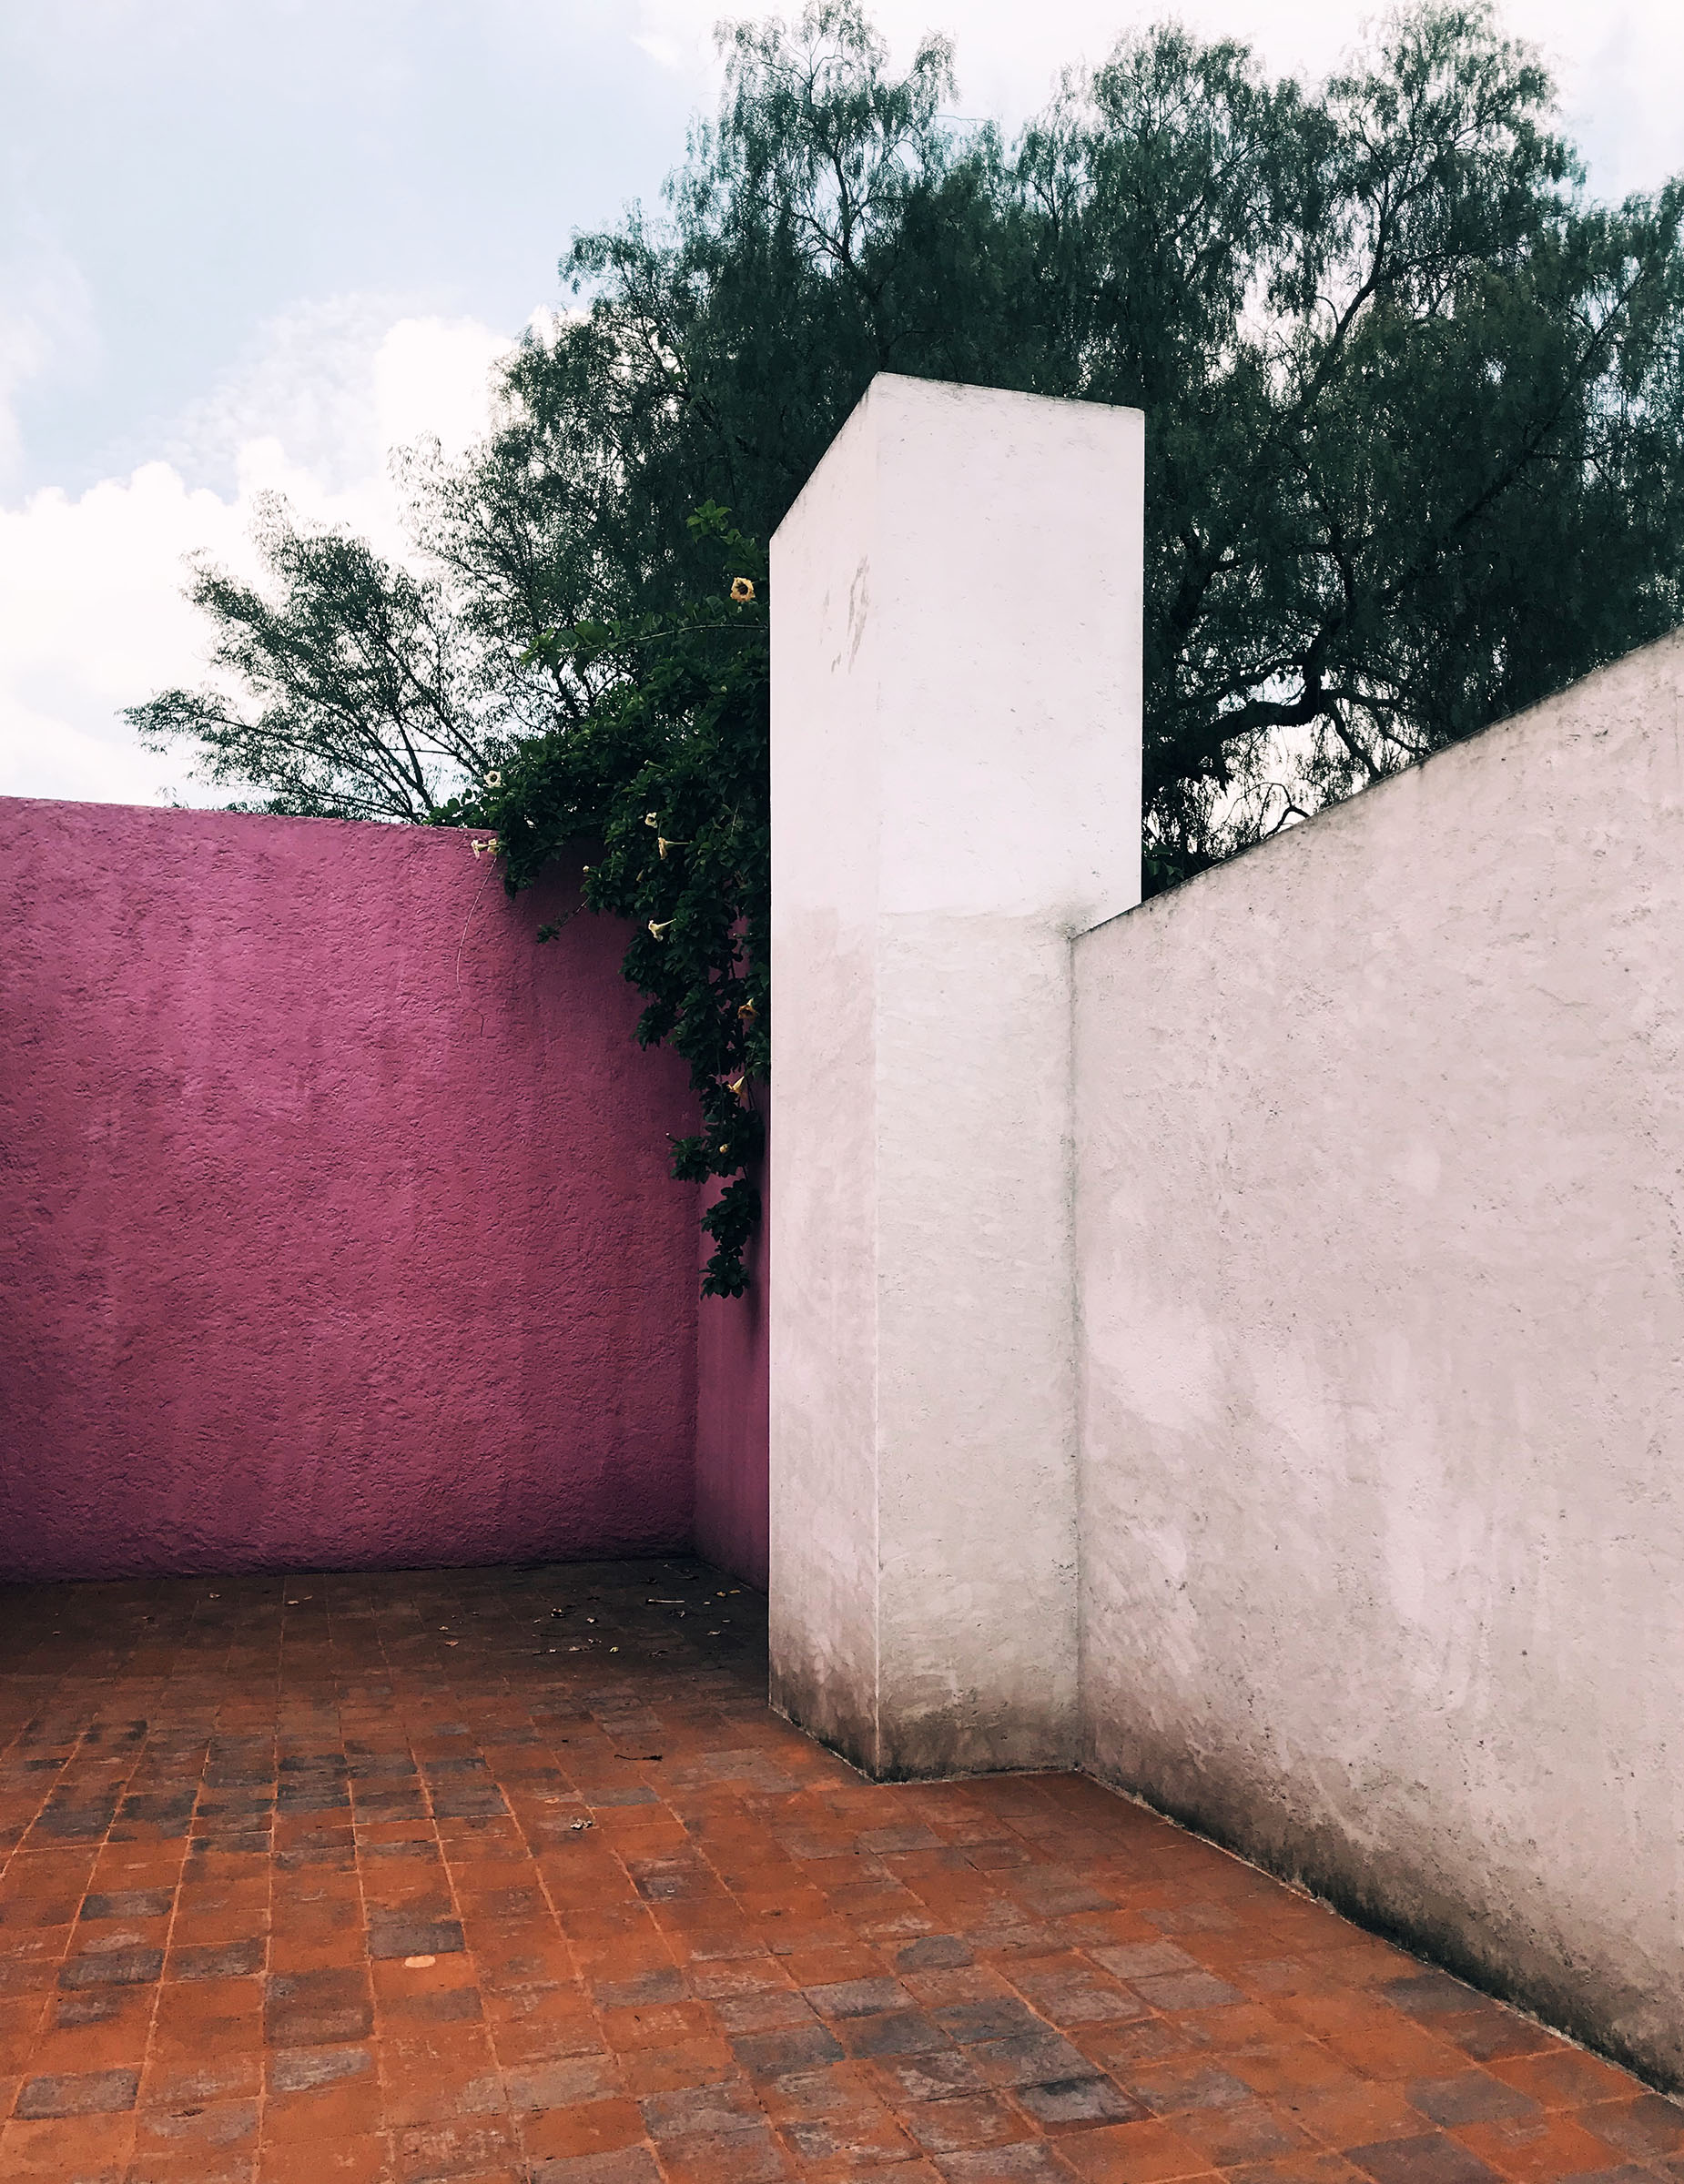 cdmx-05-barragan-terrace.jpg